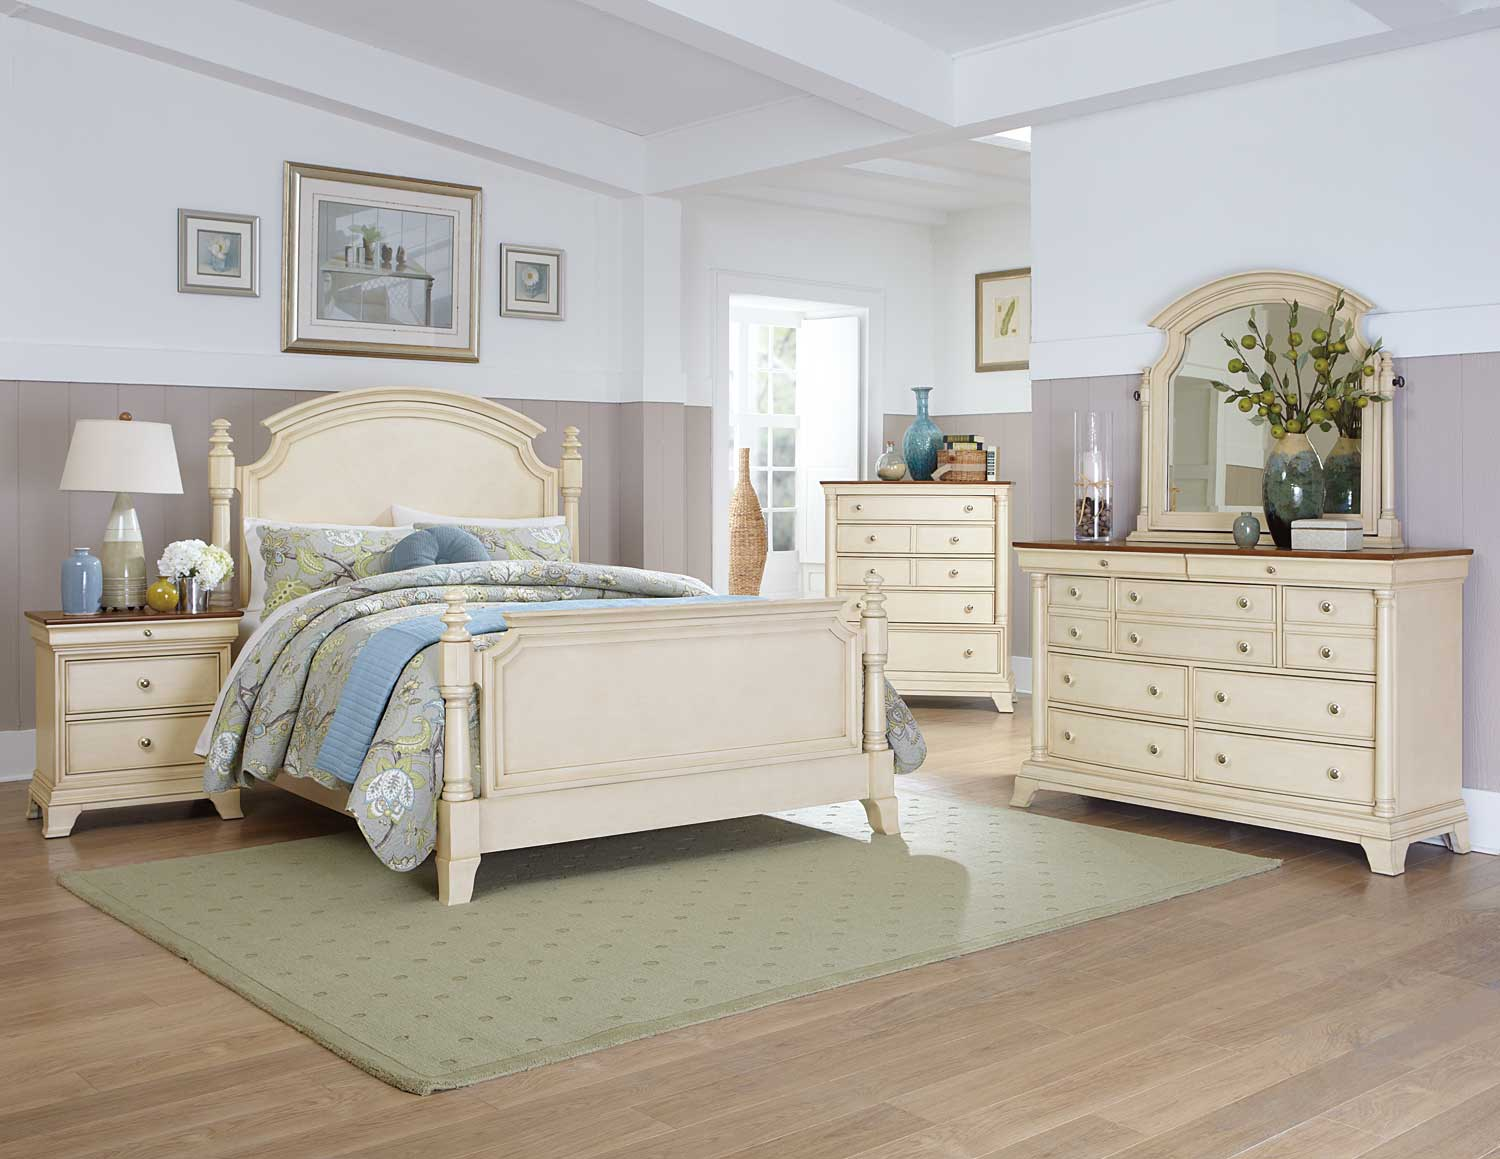 Homelegance inglewood ii bedroom set white b1402w bed set at White wooden bedroom furniture sets